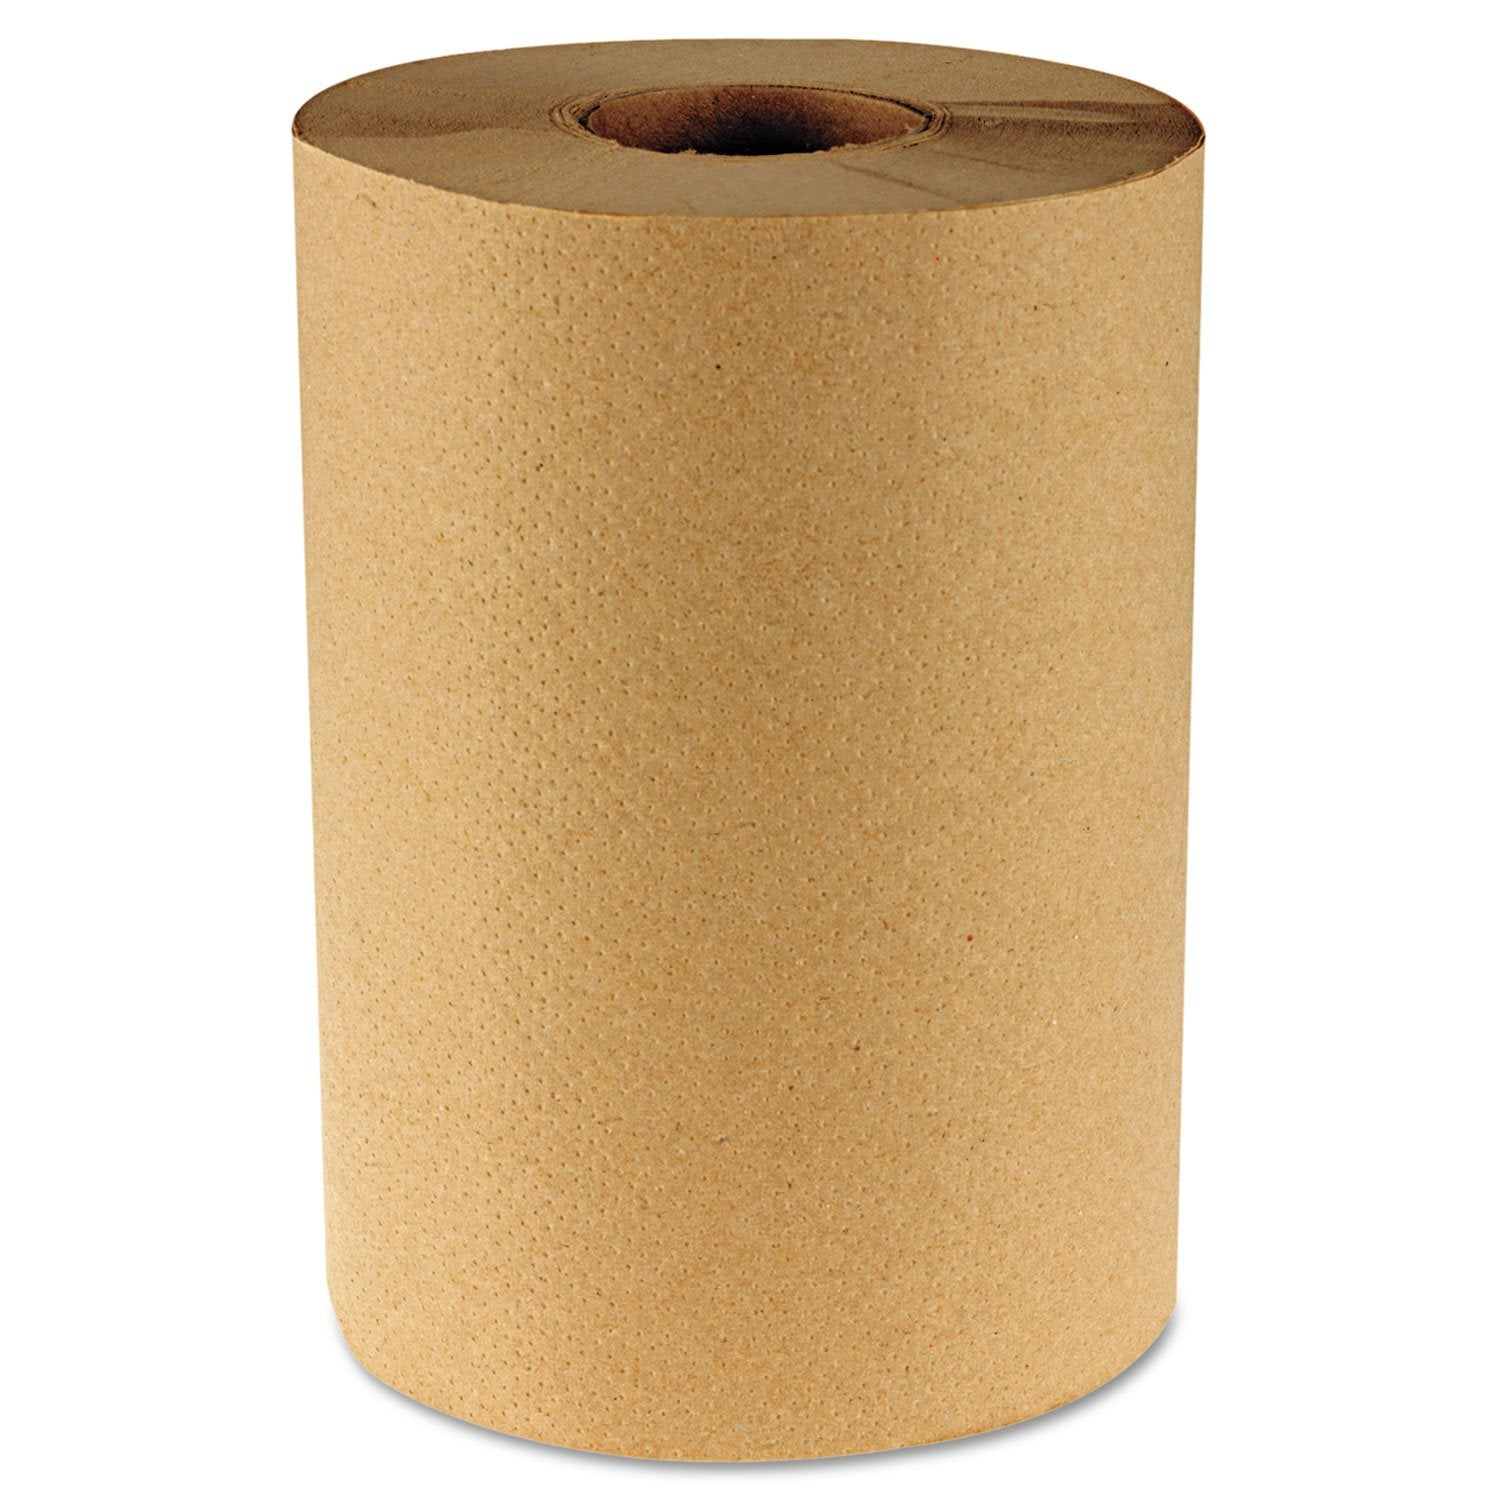 350 ft Brown Hard Roll Paper Towels, 12 Rolls